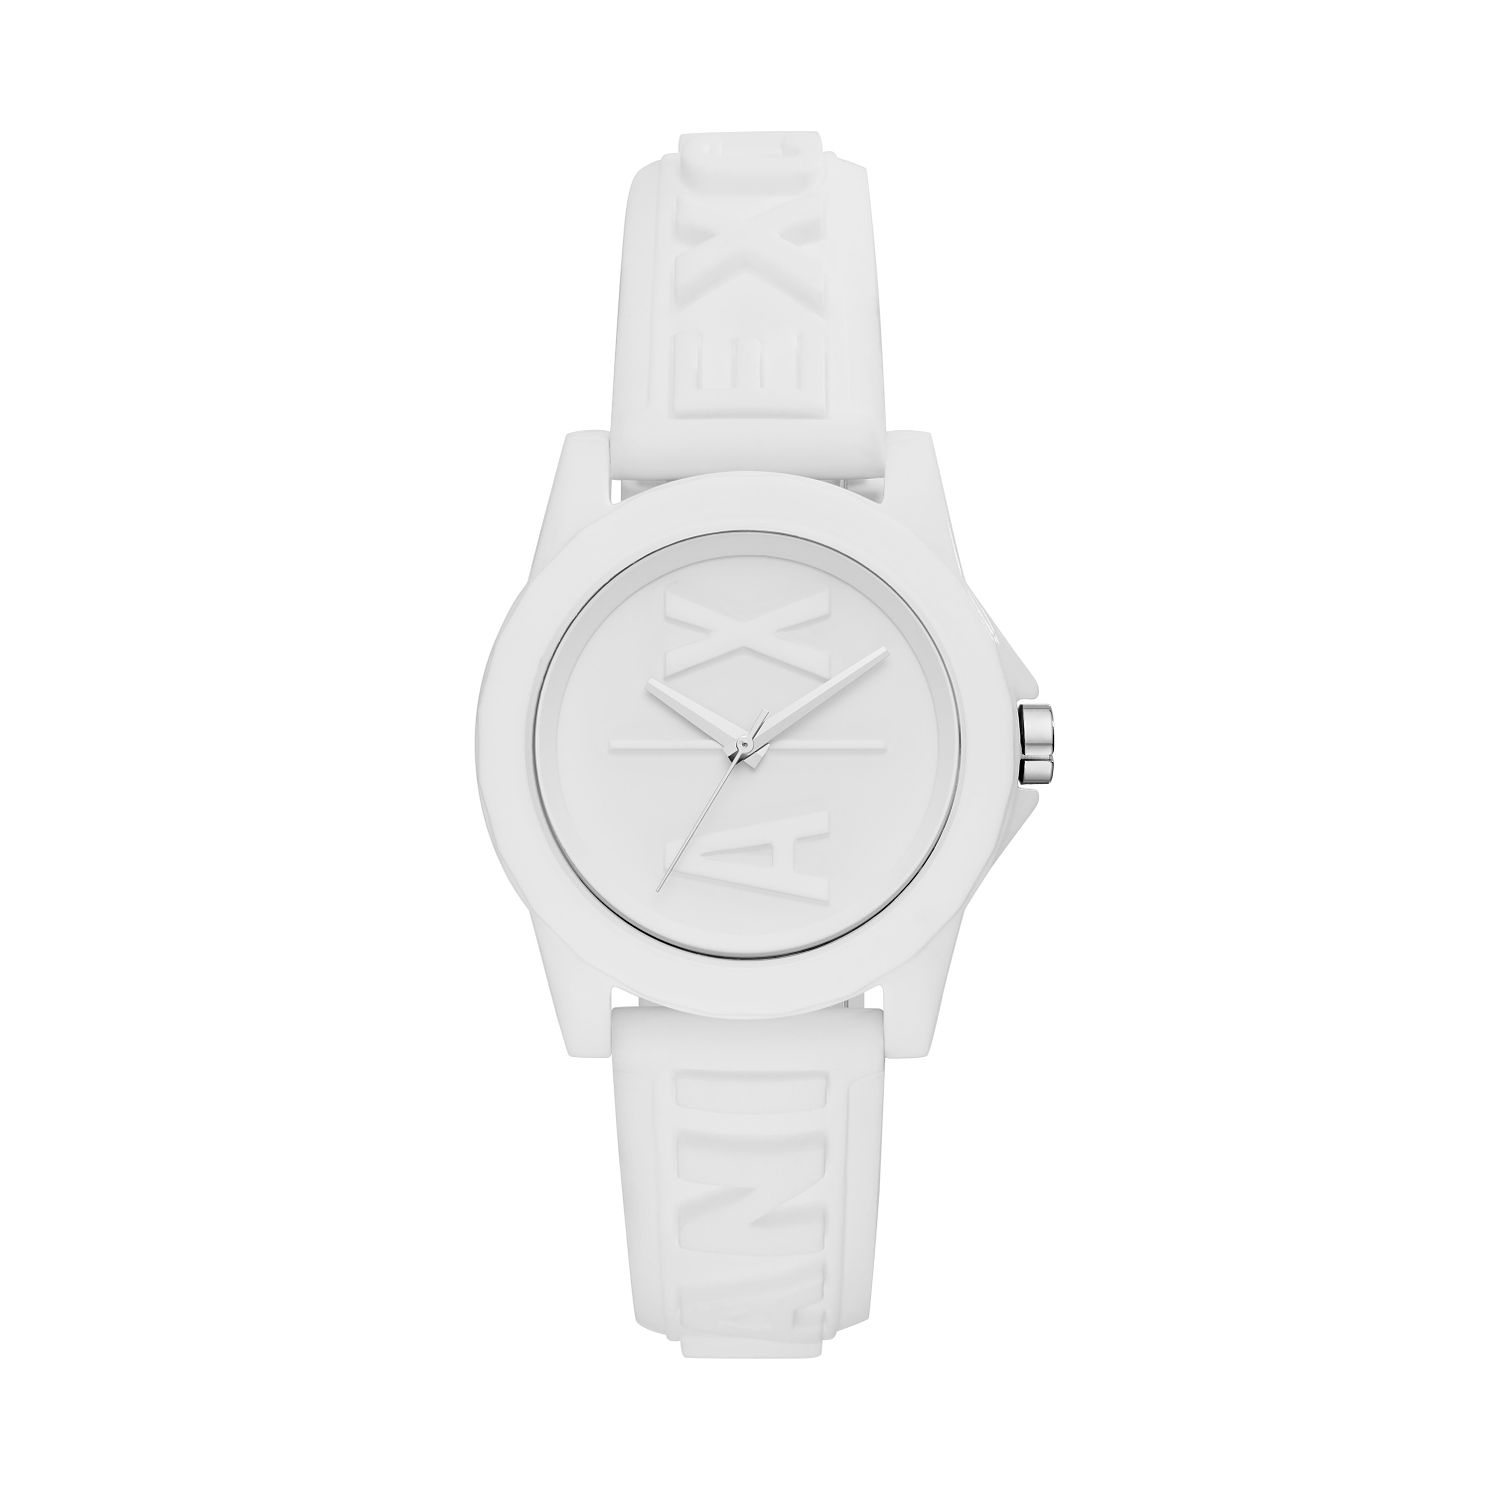 Armani Exchange Ladybanks Ladies' White Silicone Strap Watch - Product number 5326664